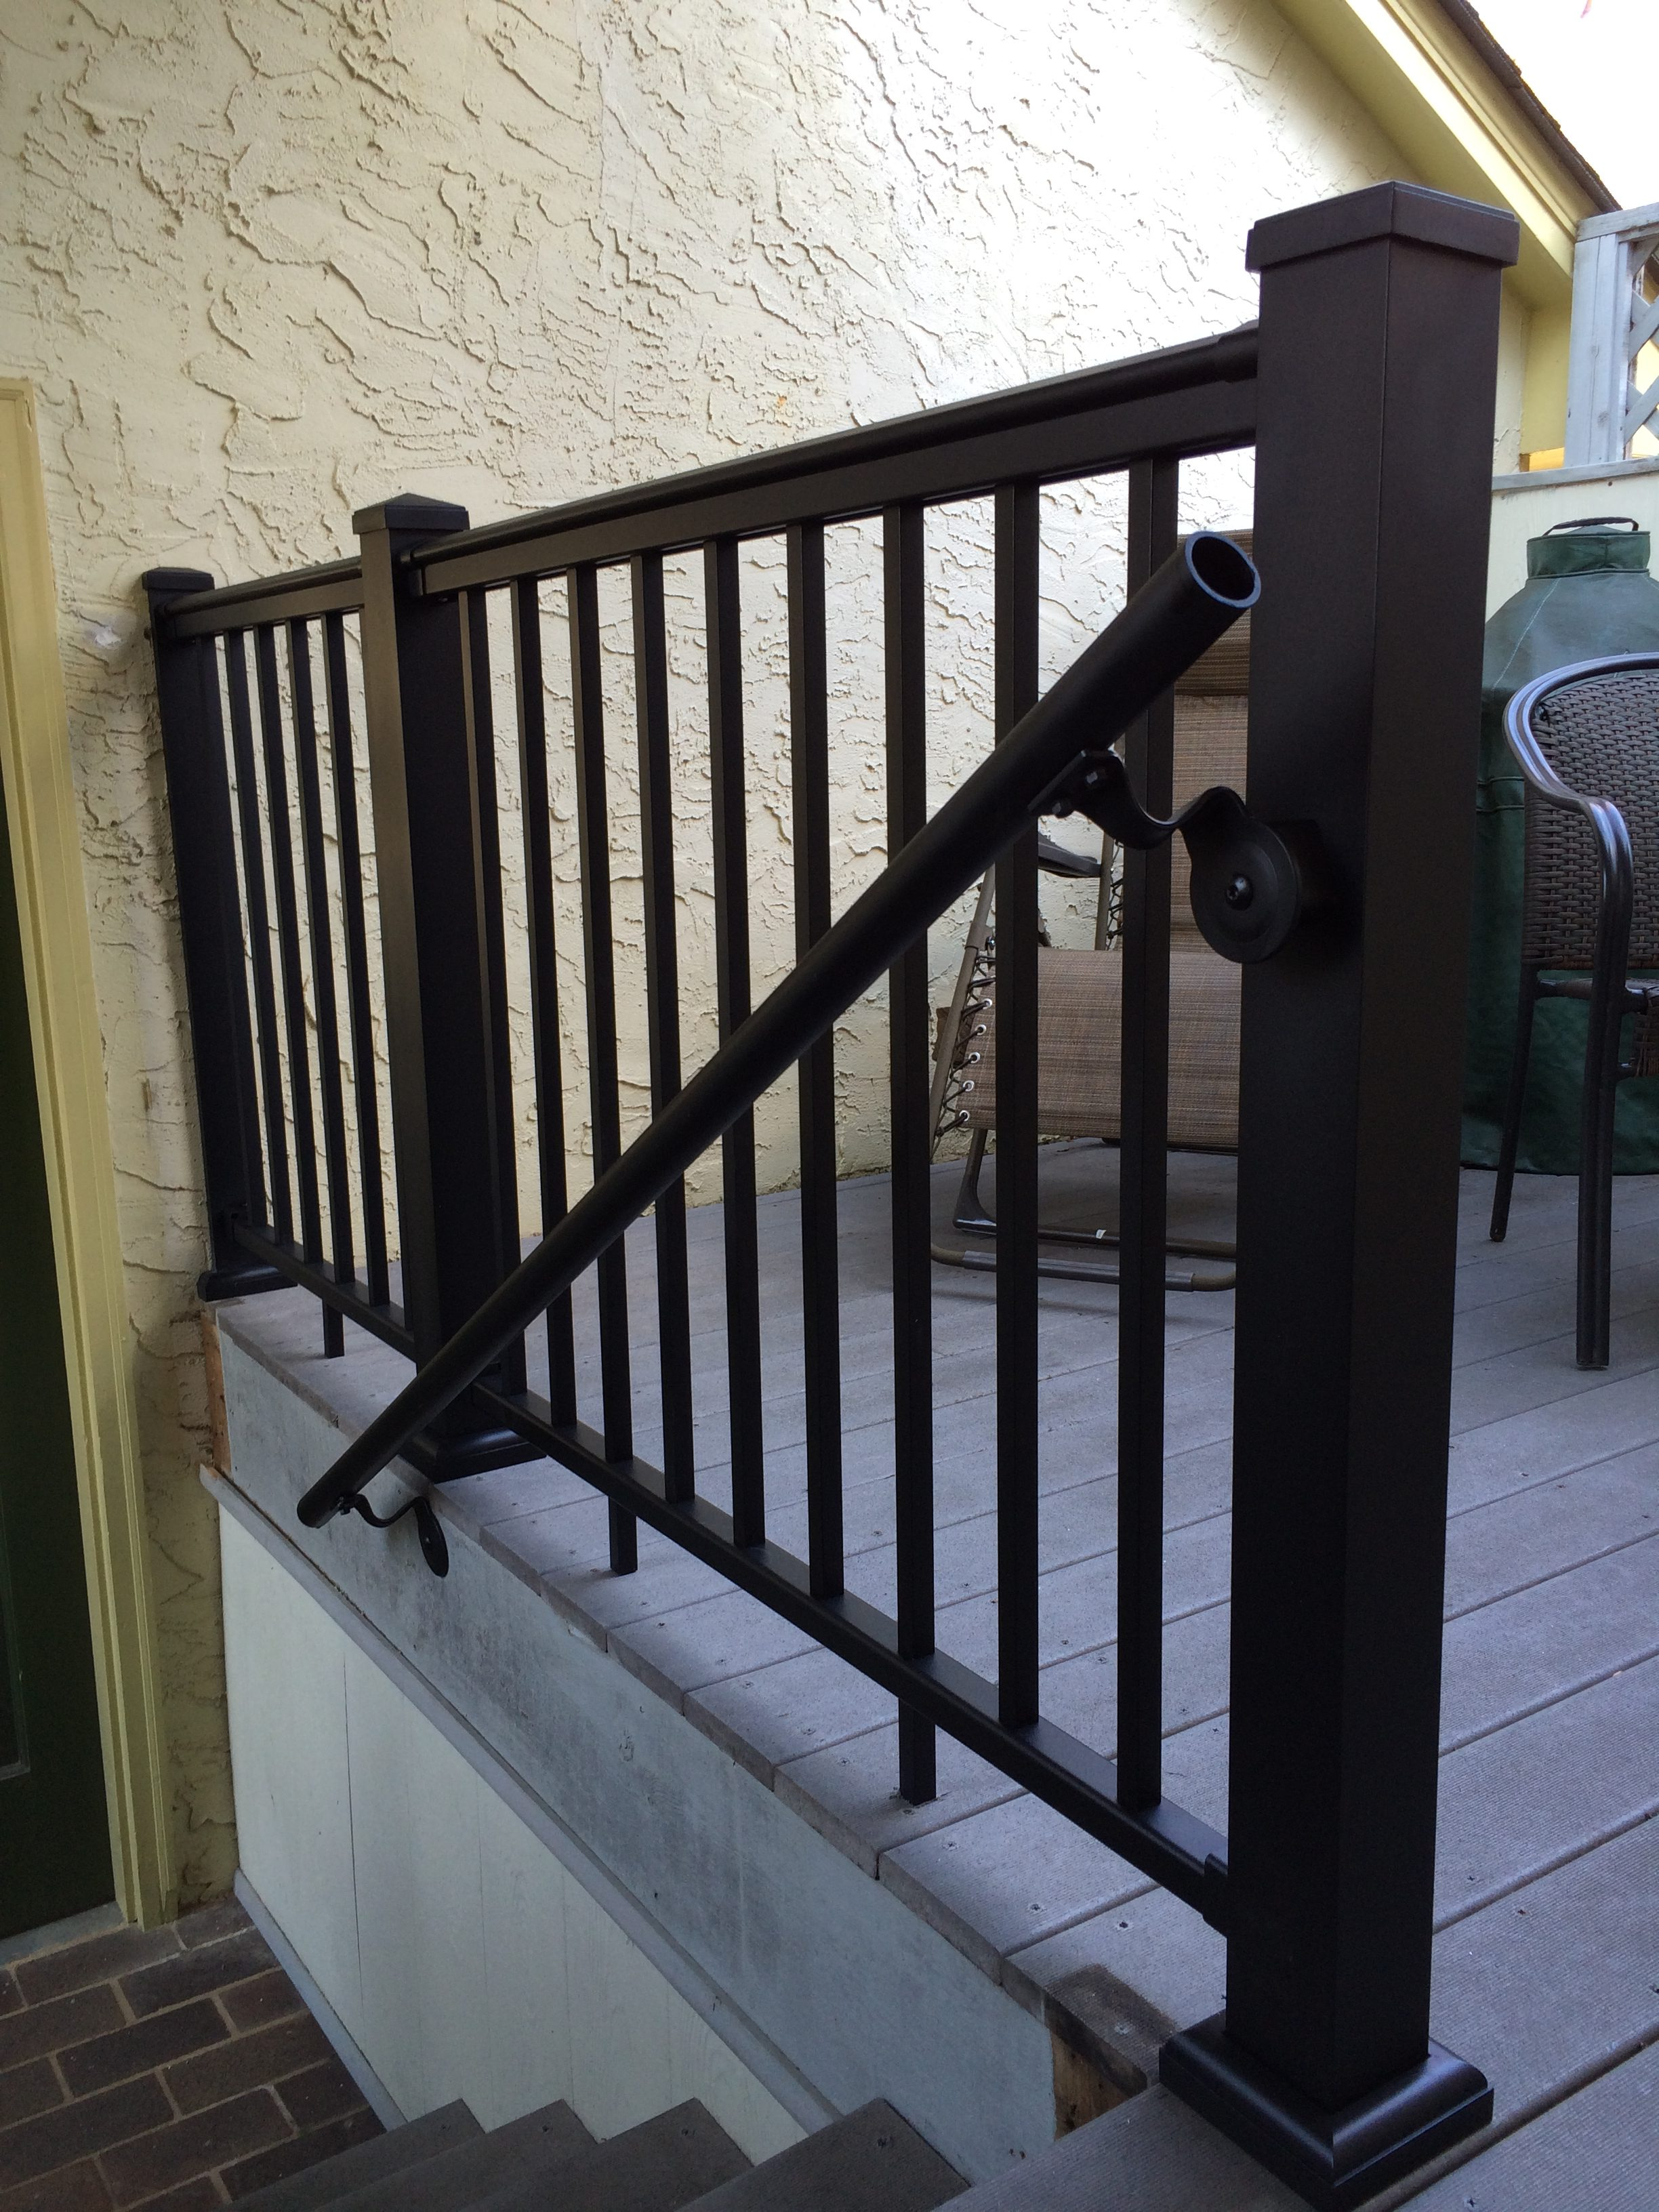 Redi rail afco aluminum stair railing systems